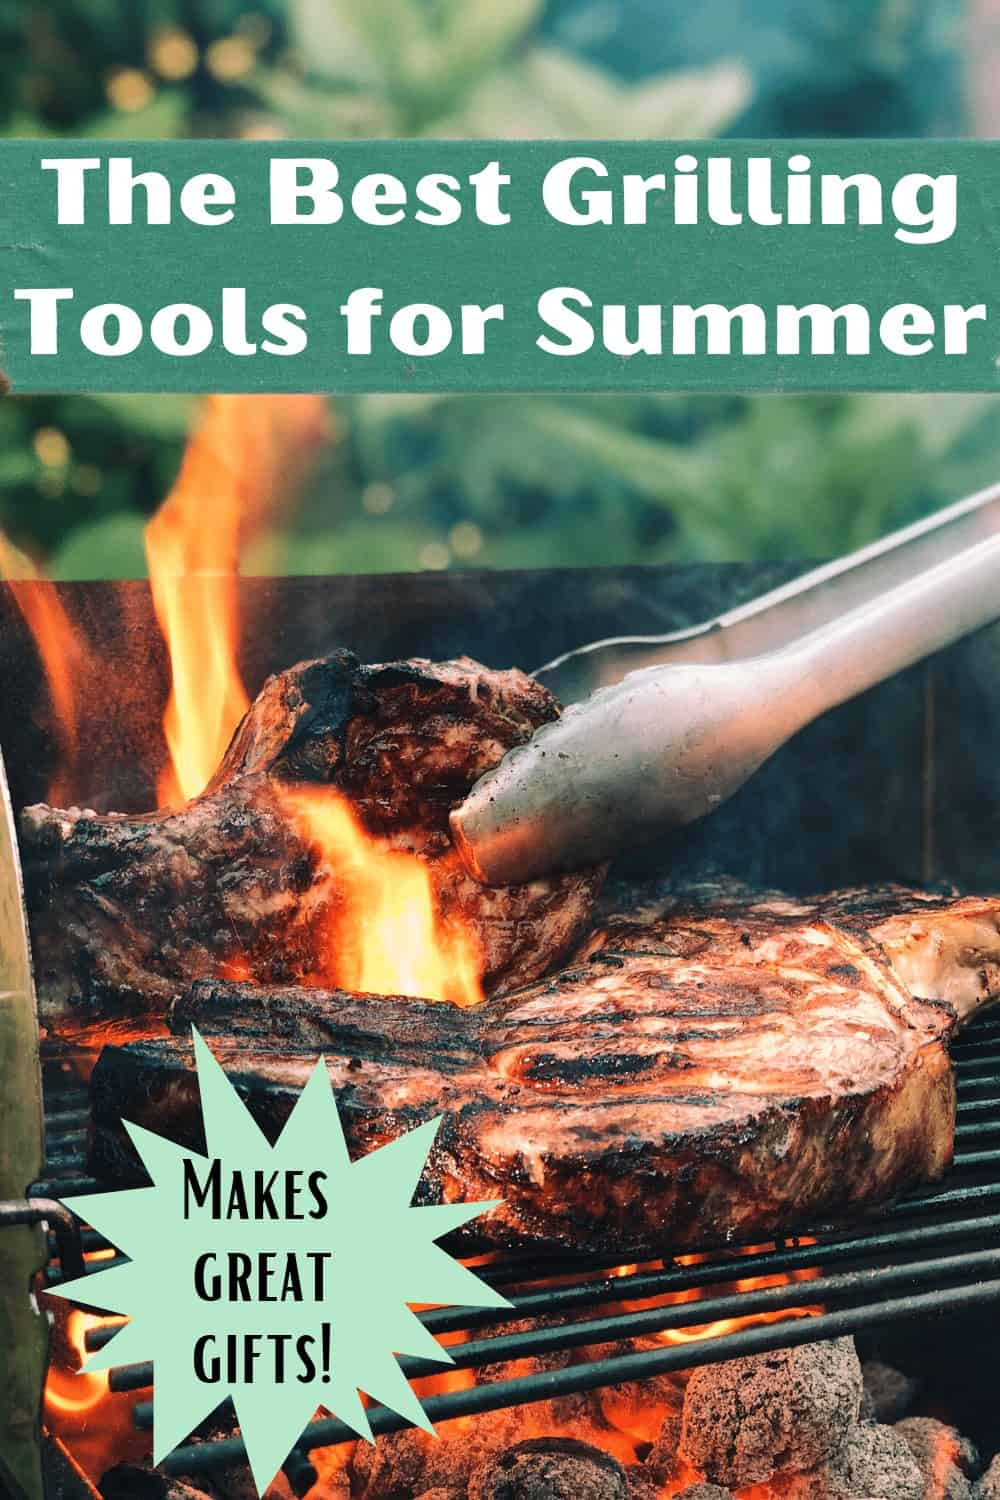 Tongs flipping a steak on a bbq grill